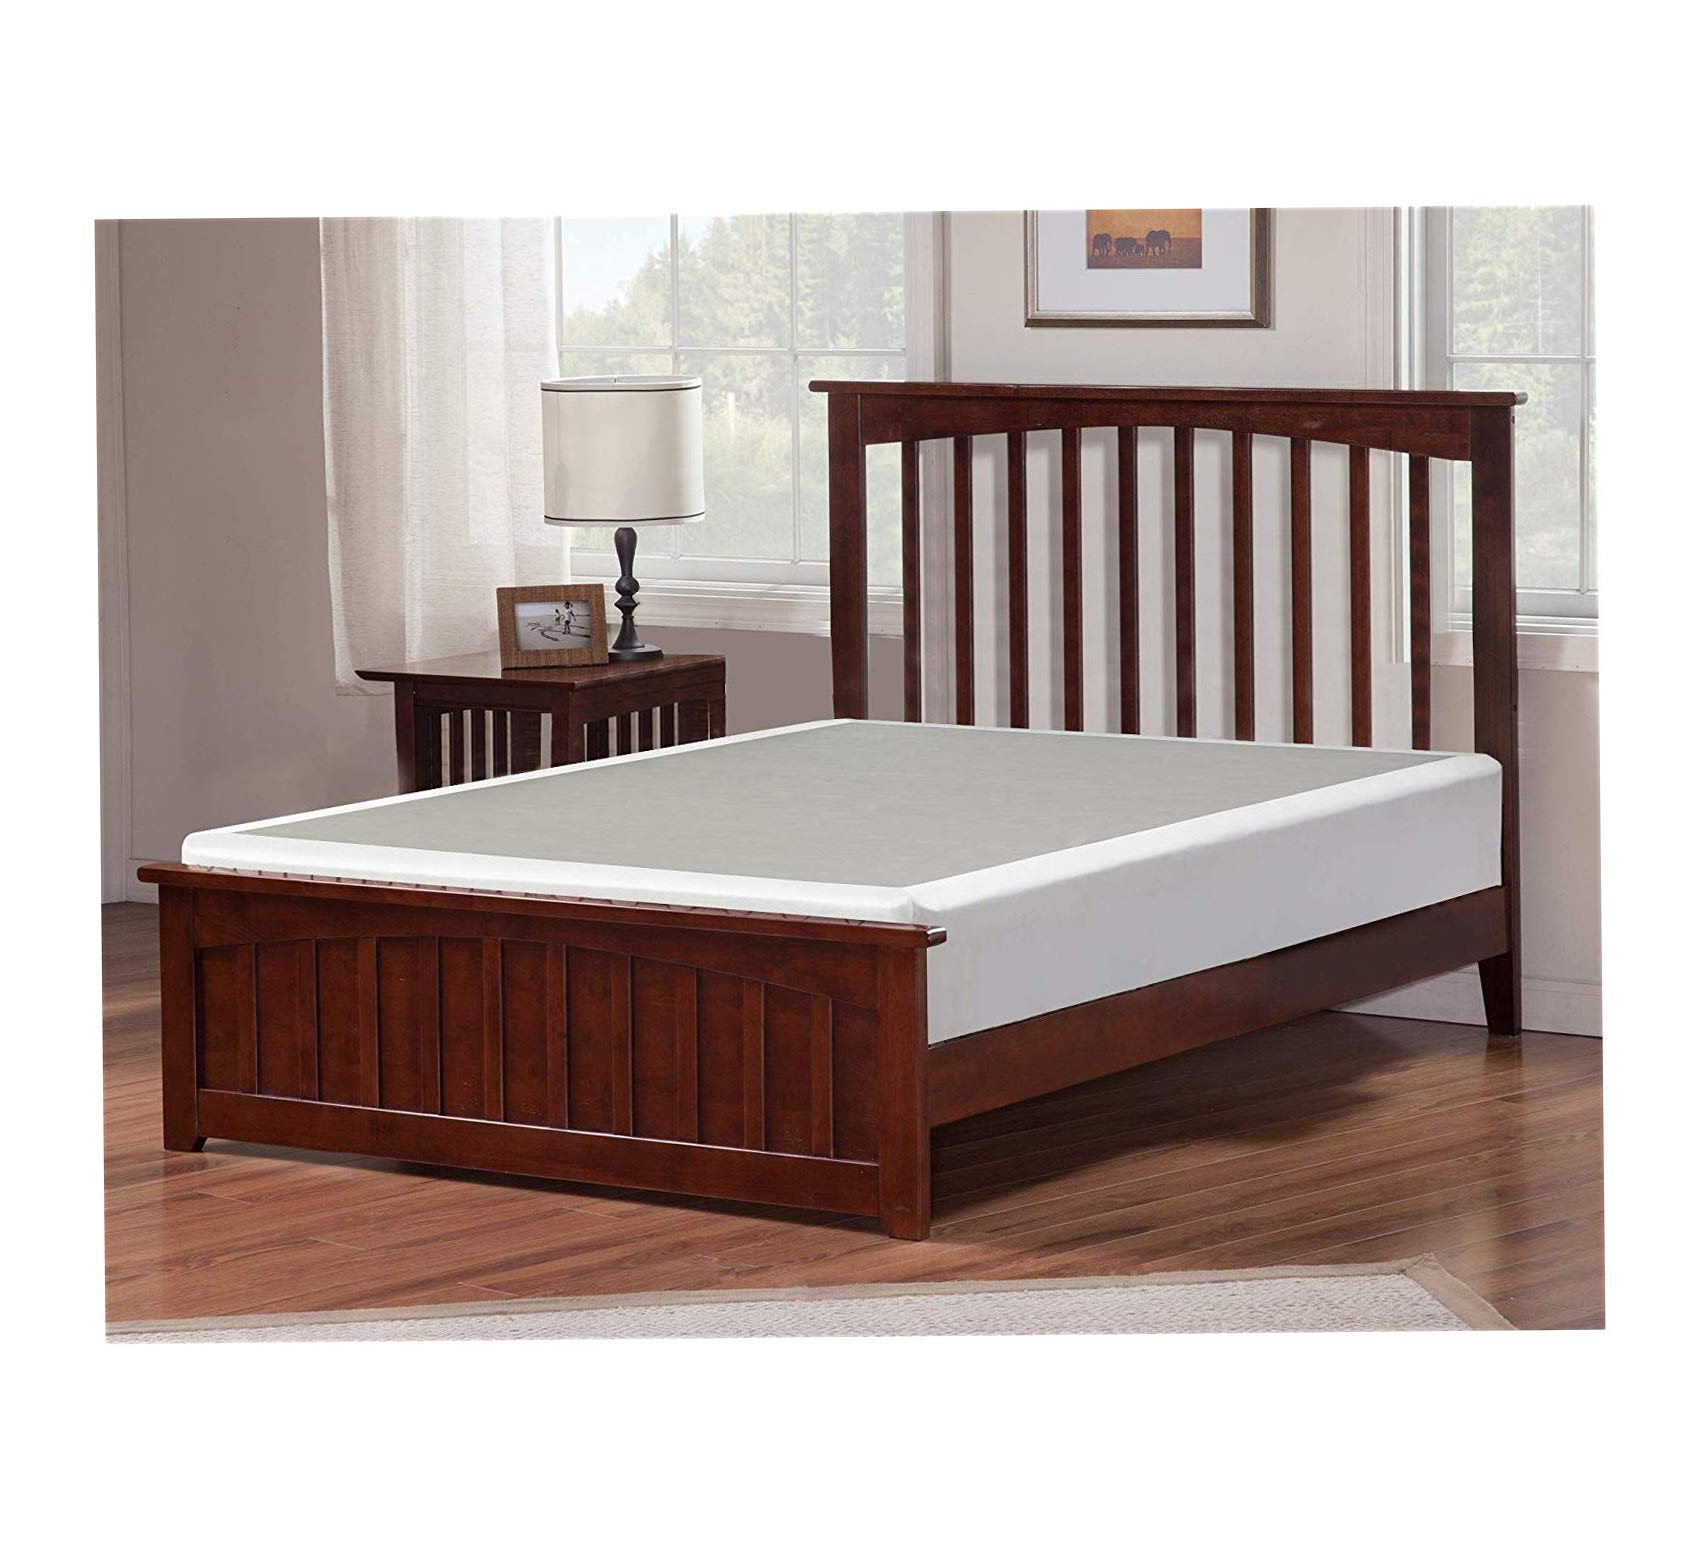 Wood & Style 4-Inch Queen Size Box Spring Low Profile Mattress Foundation/Strong Structure, 59x79 Comfy Living Home Décor Furniture Heavy Duty by Wood & Style